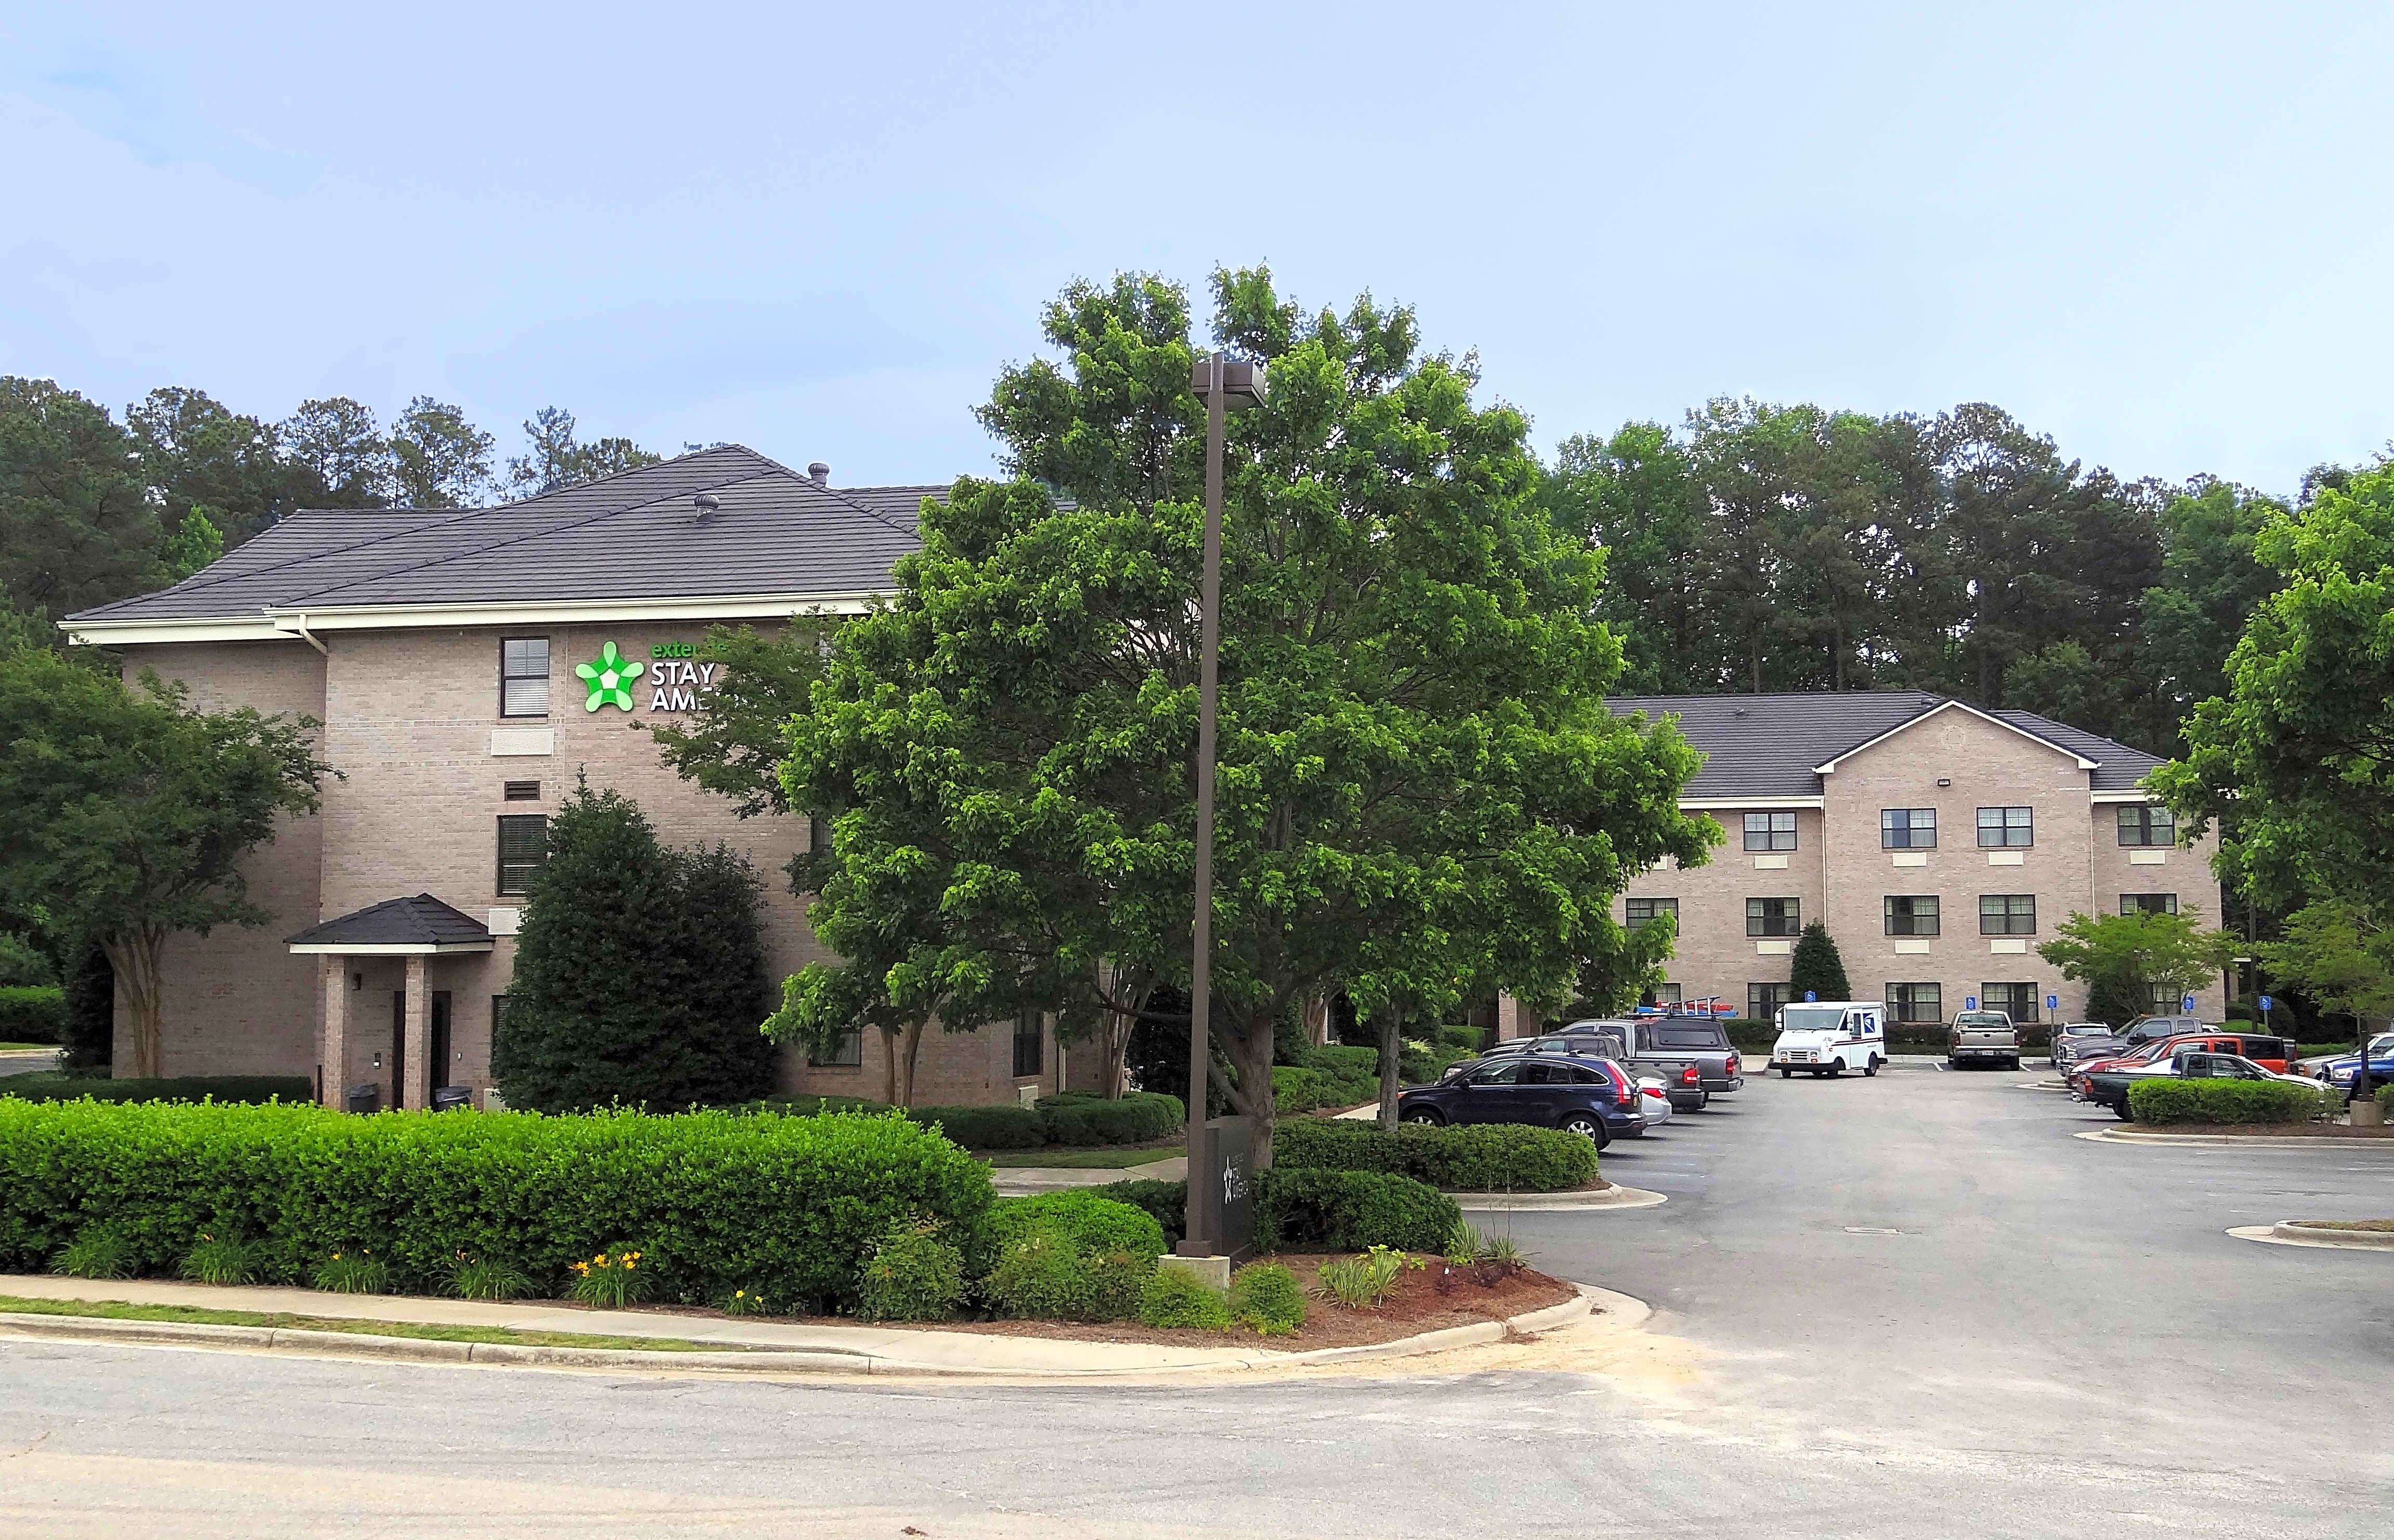 Apartments Near NC State Furnished Studio - Raleigh - Cary - Regency Parkway North for North Carolina State University Students in Raleigh, NC